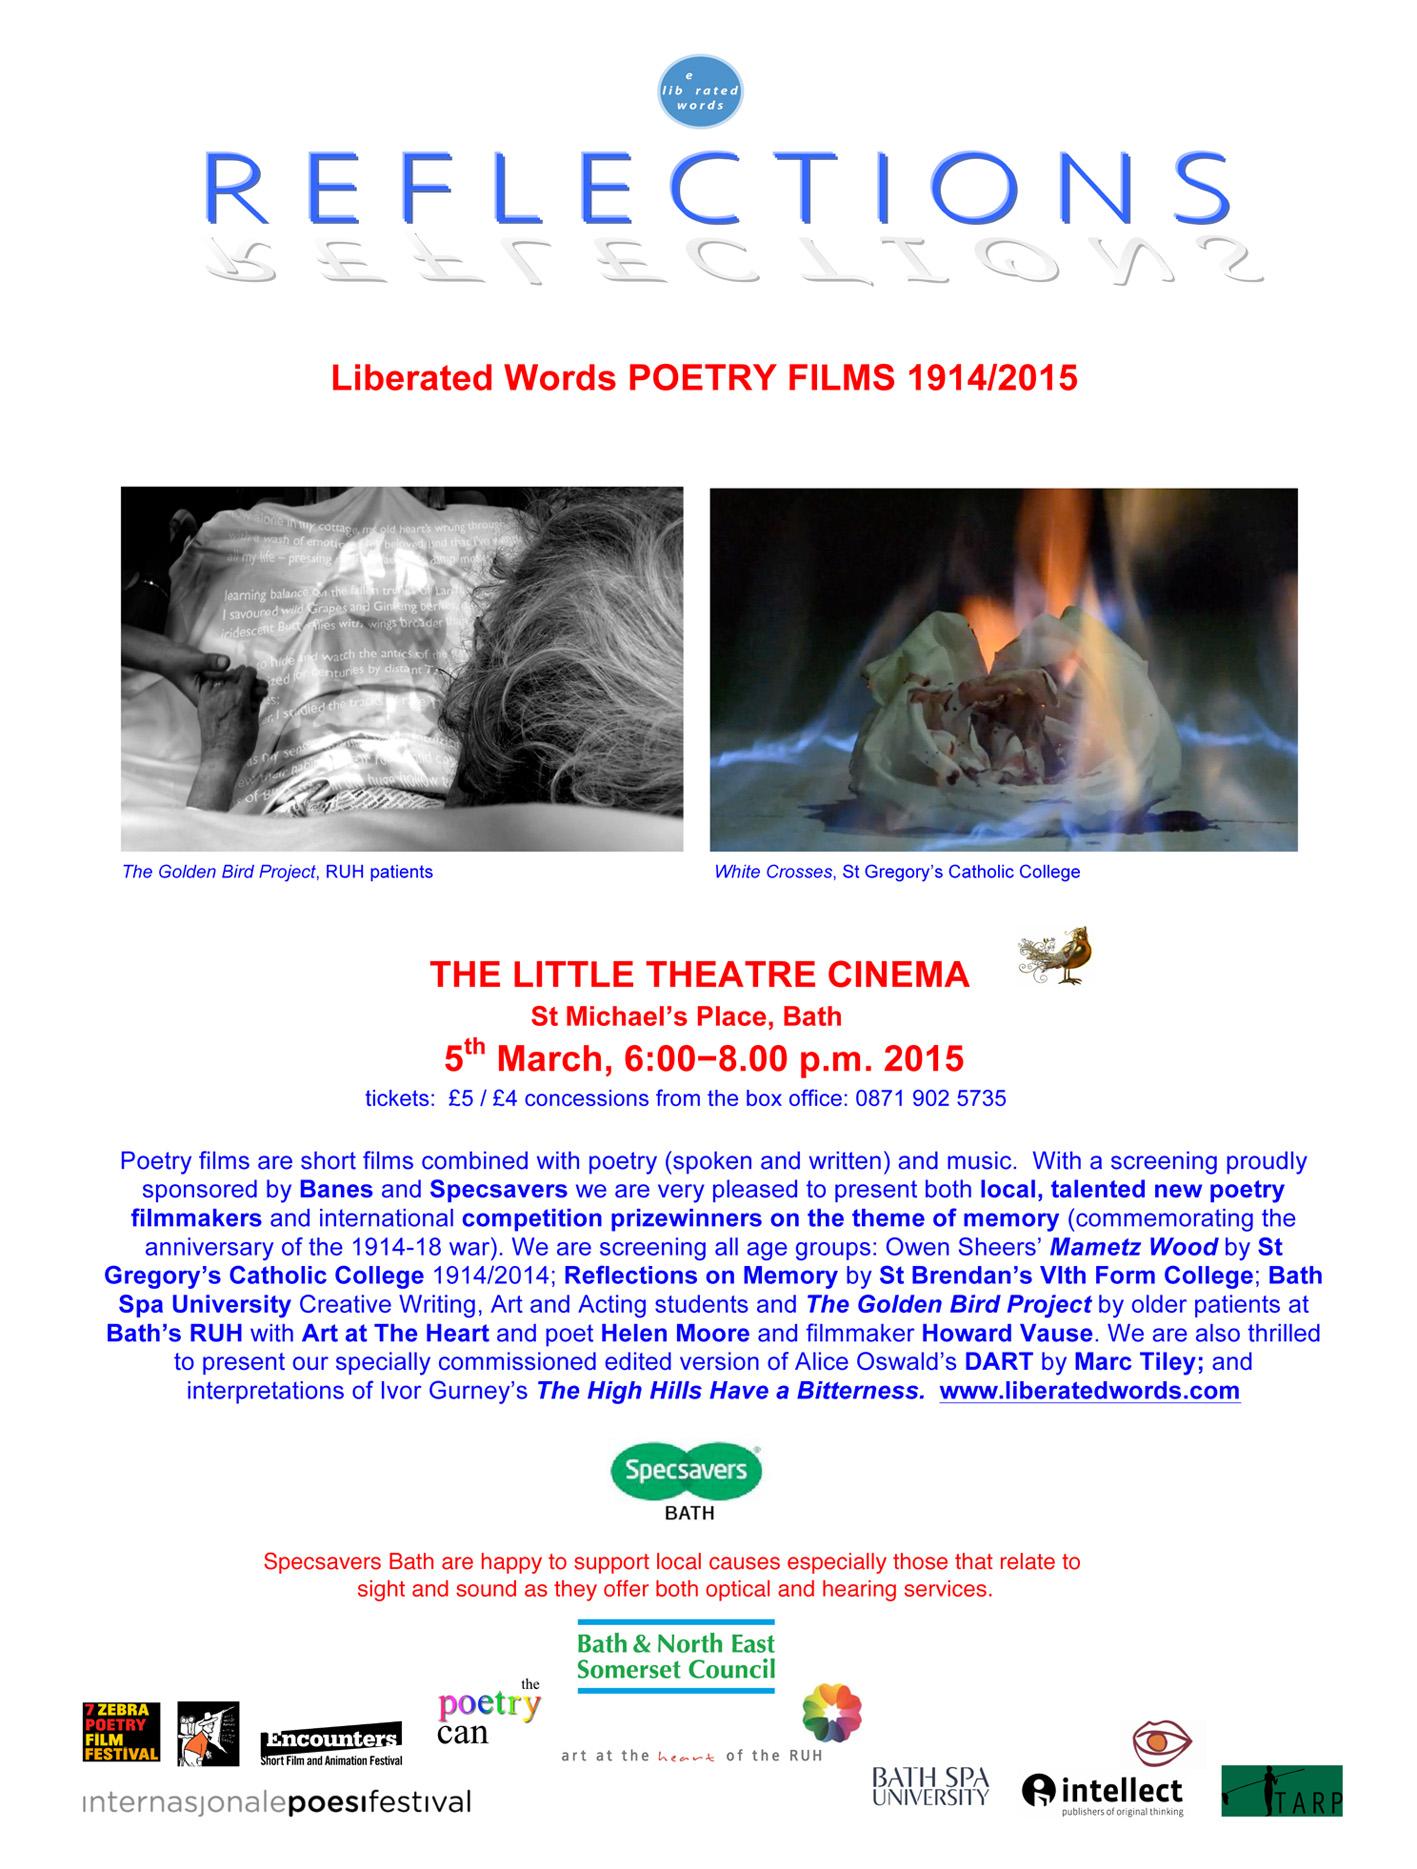 Microsoft Word - REFLECTIONS Little Theatre Cinema 5 march.doc